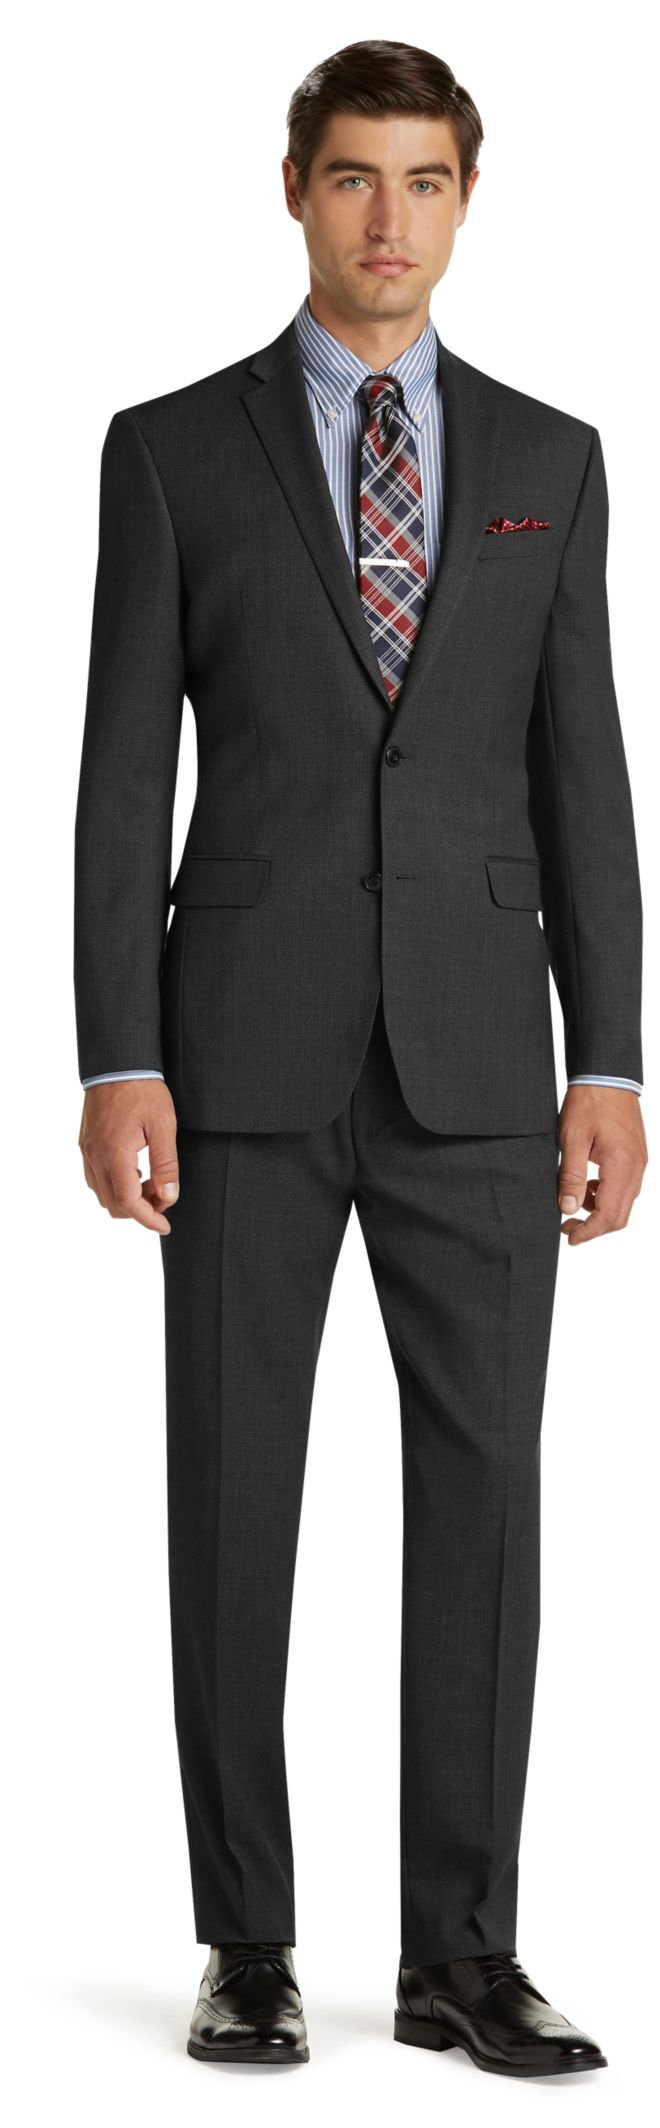 Fine Wool Slim Fit Suit - Men's Suits | JoS. A. Bank